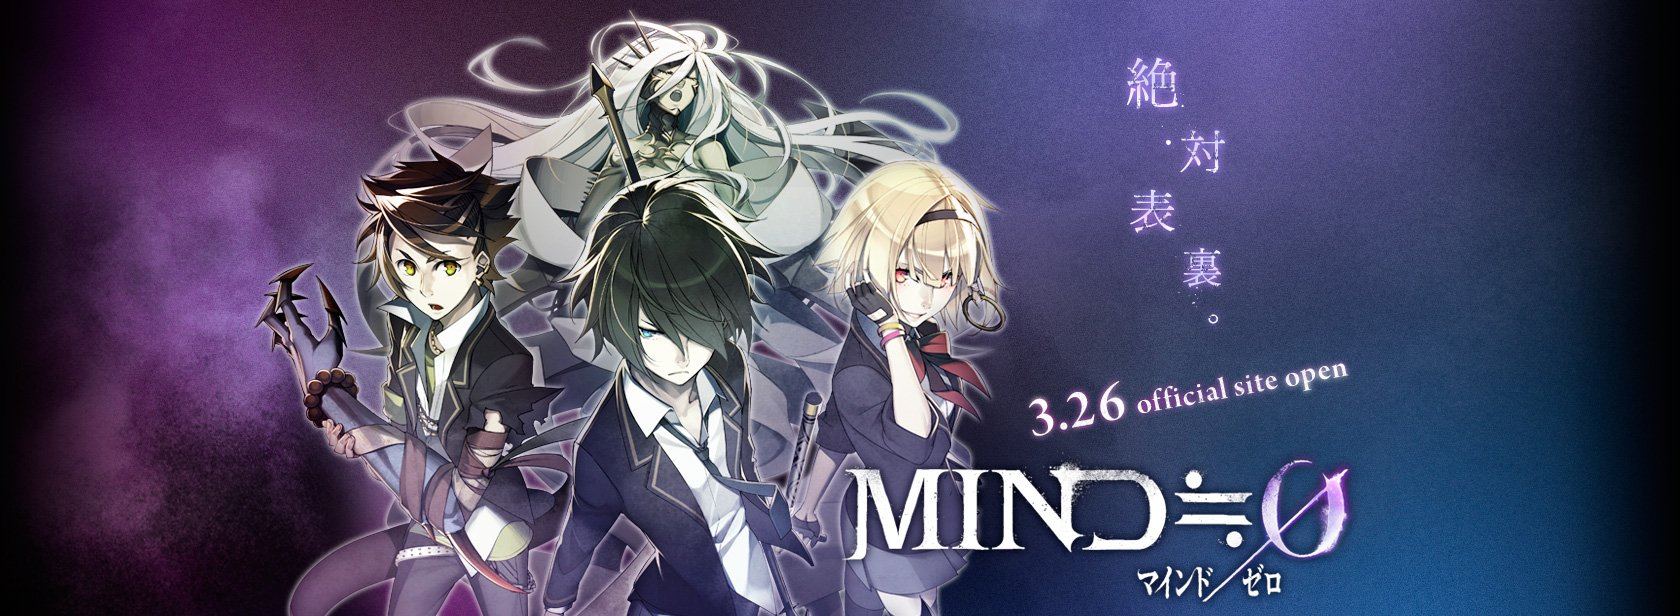 Acquire (orgarhythm, SUMIONI, Shinobido2) анонсировала MIND≒0 ... для PS VITA естественно! - Изображение 1